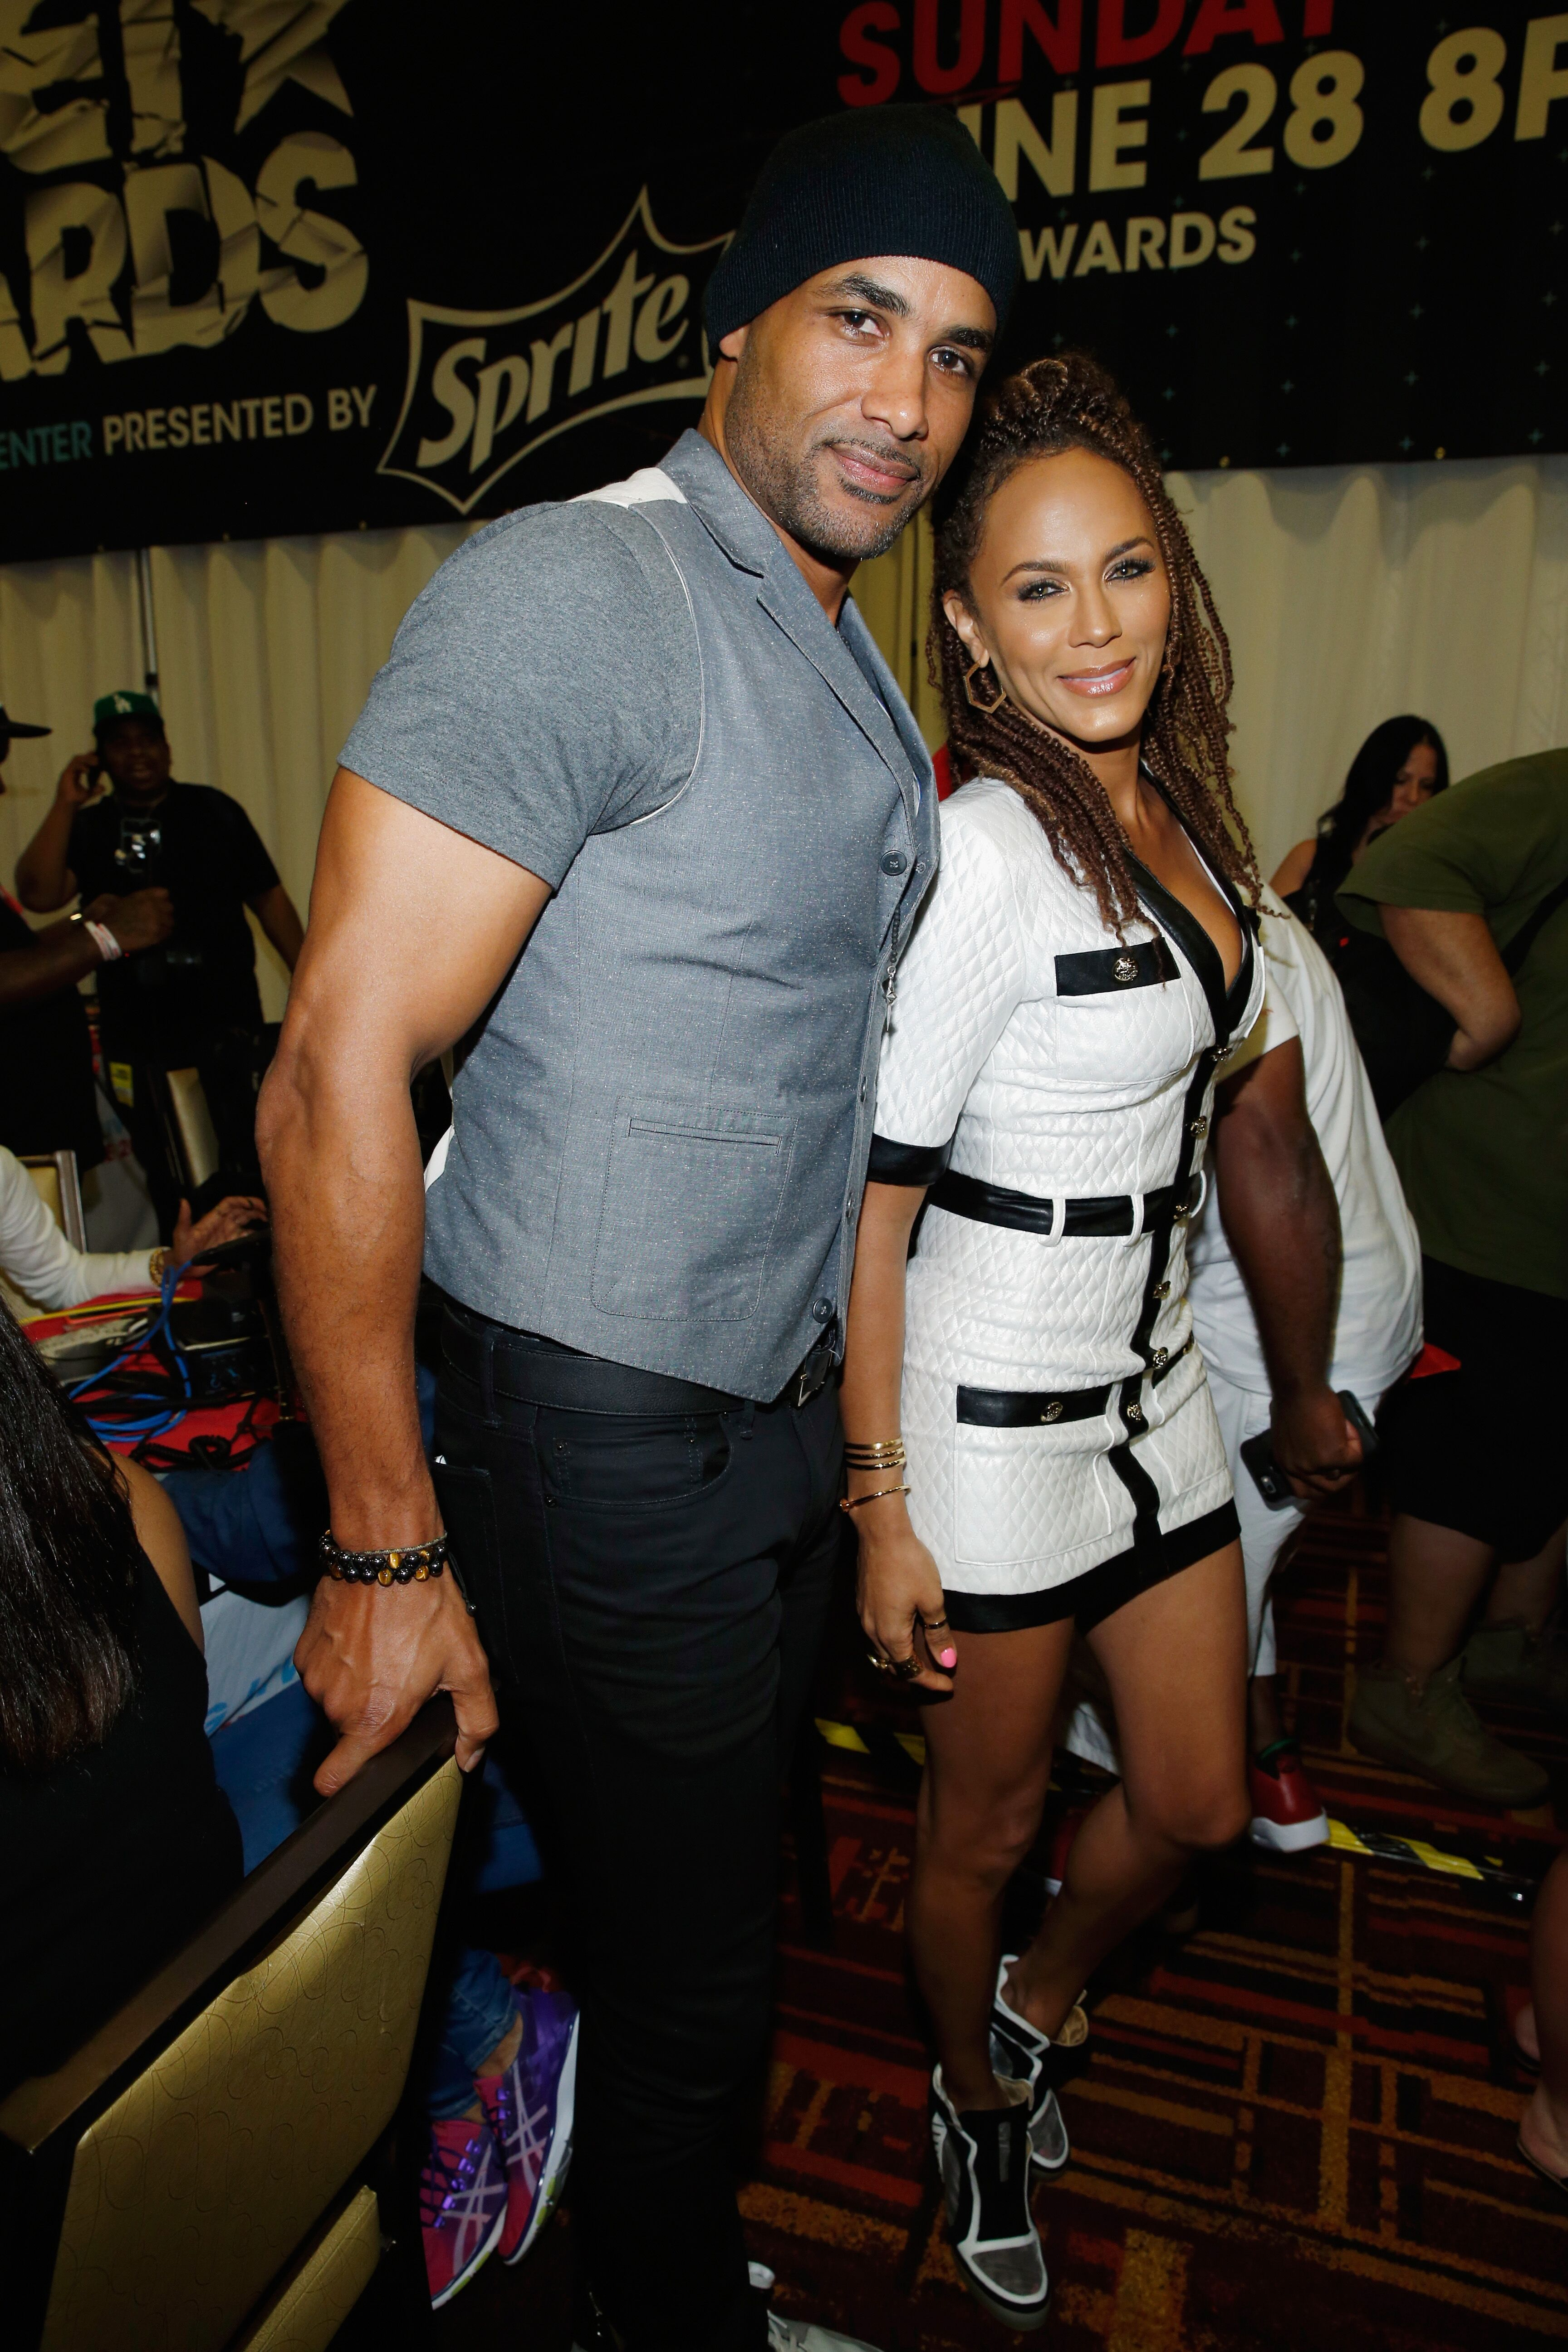 Boris Kodjoe (L) and Nicole Ari Parker attend day 2 of the radio broadcast center during the 2015 BET Experience on June 27, 2015 in Los Angeles, California. | Source: Getty Images